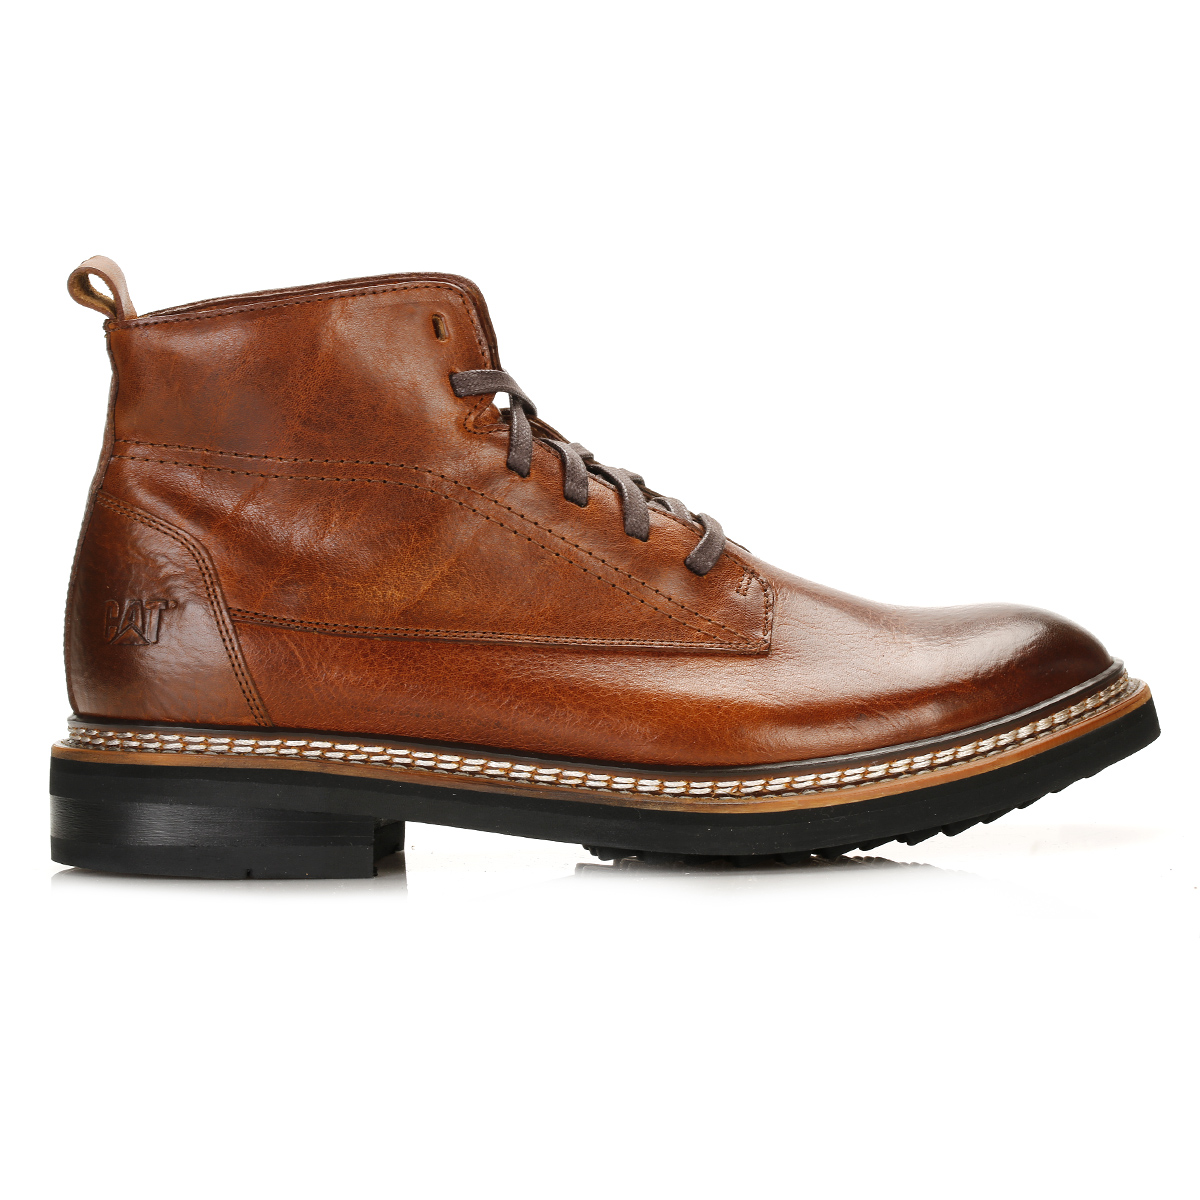 CAT Caterpillar Mens Brown Leather Chukka Boots Goodyear-Welted Ankle Shoes | EBay